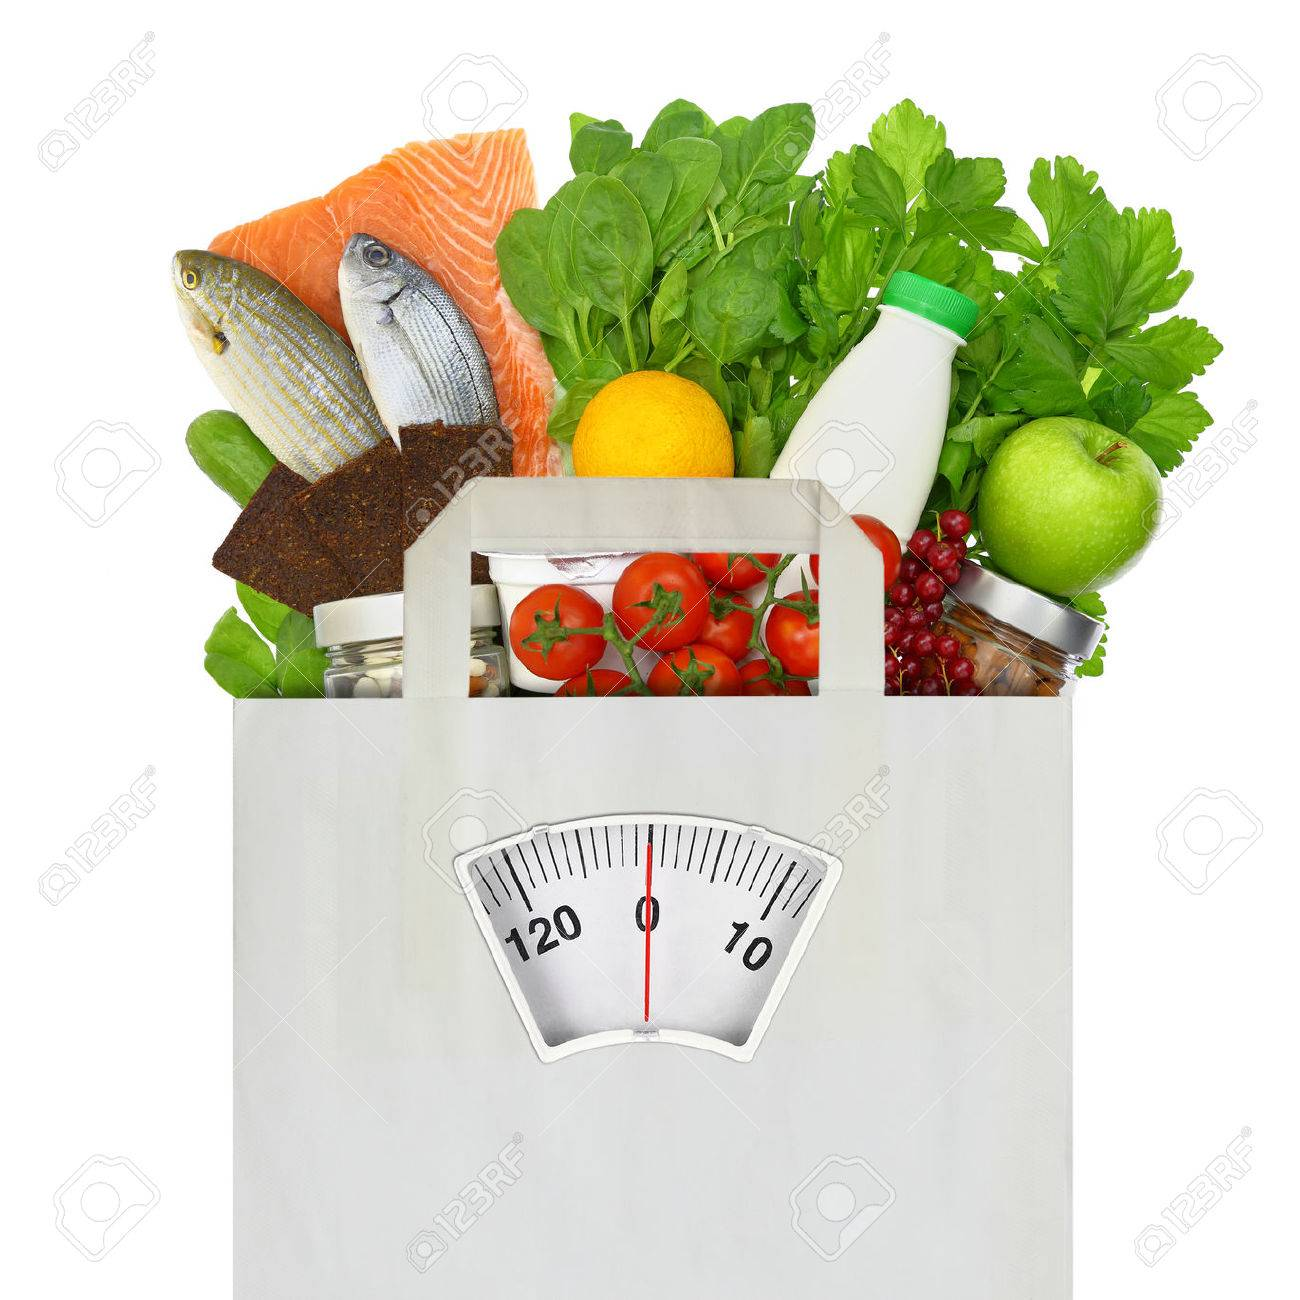 Paper bag full of groceries with weighing scale Stock Photo - 32264889